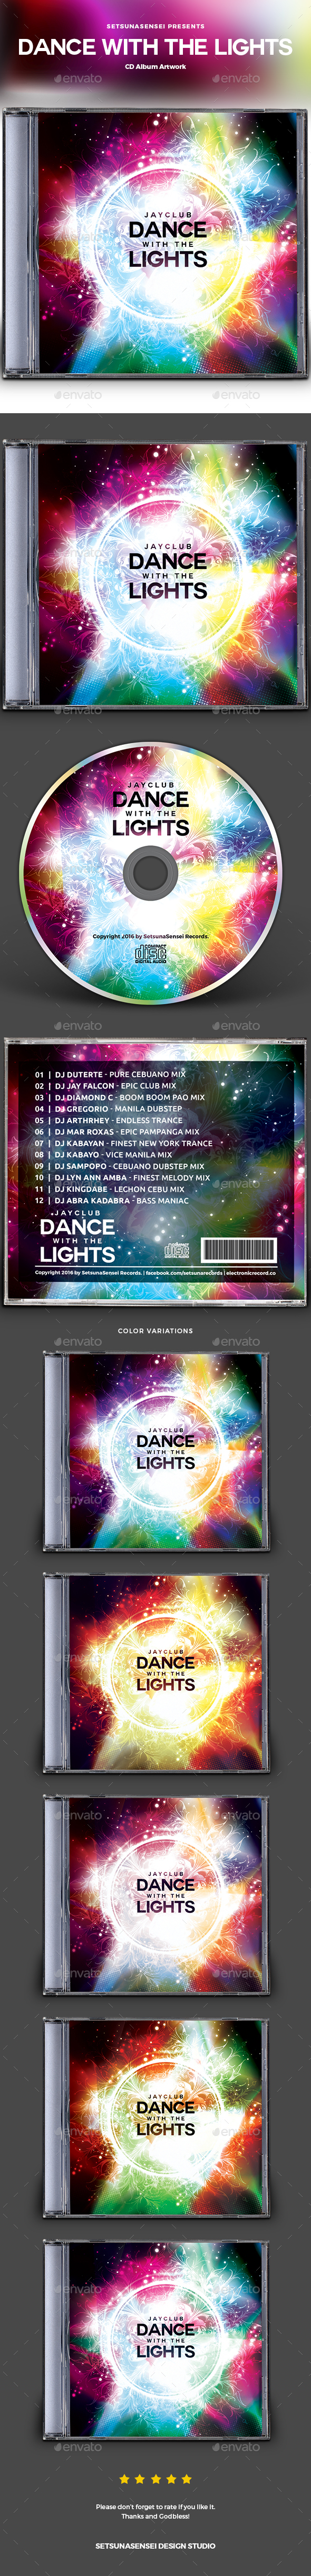 GraphicRiver Dance with the Lights CD Album Artwork 20919983